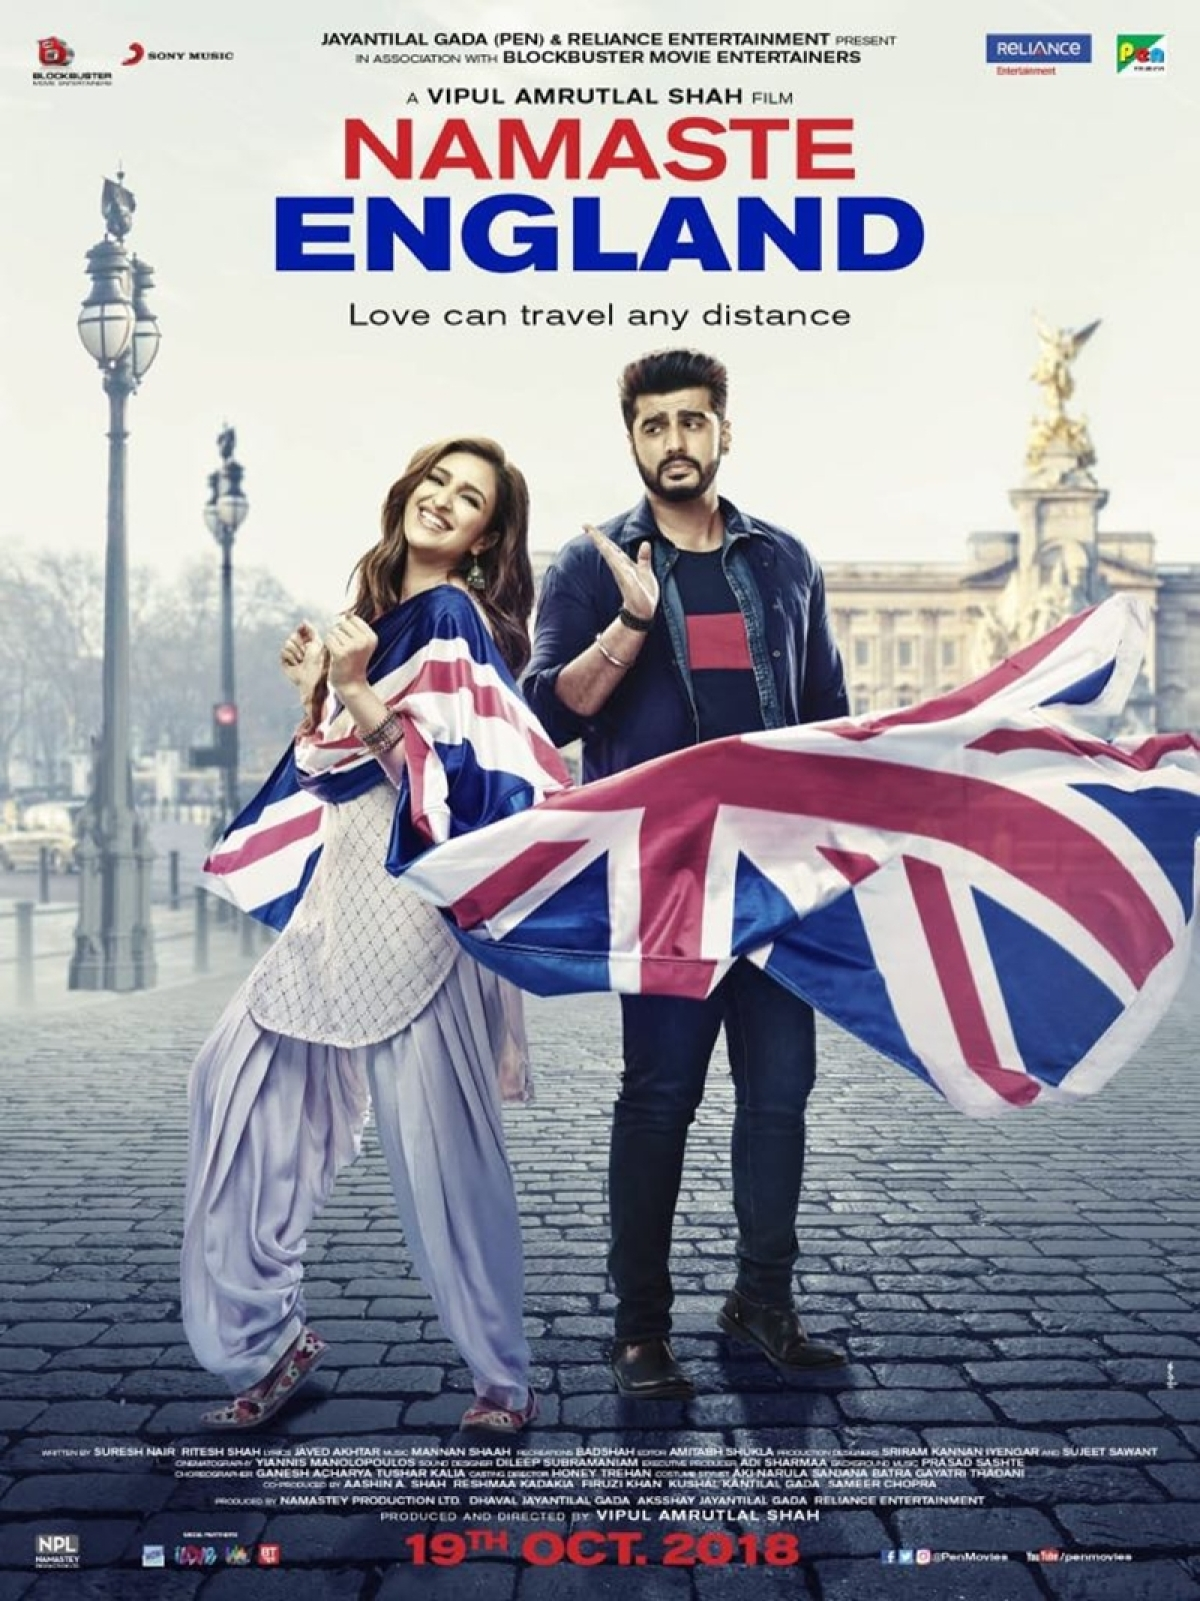 'Namaste England' posters: Arjun Kapoor and Parineeti Chopra prove distance is no bar in love